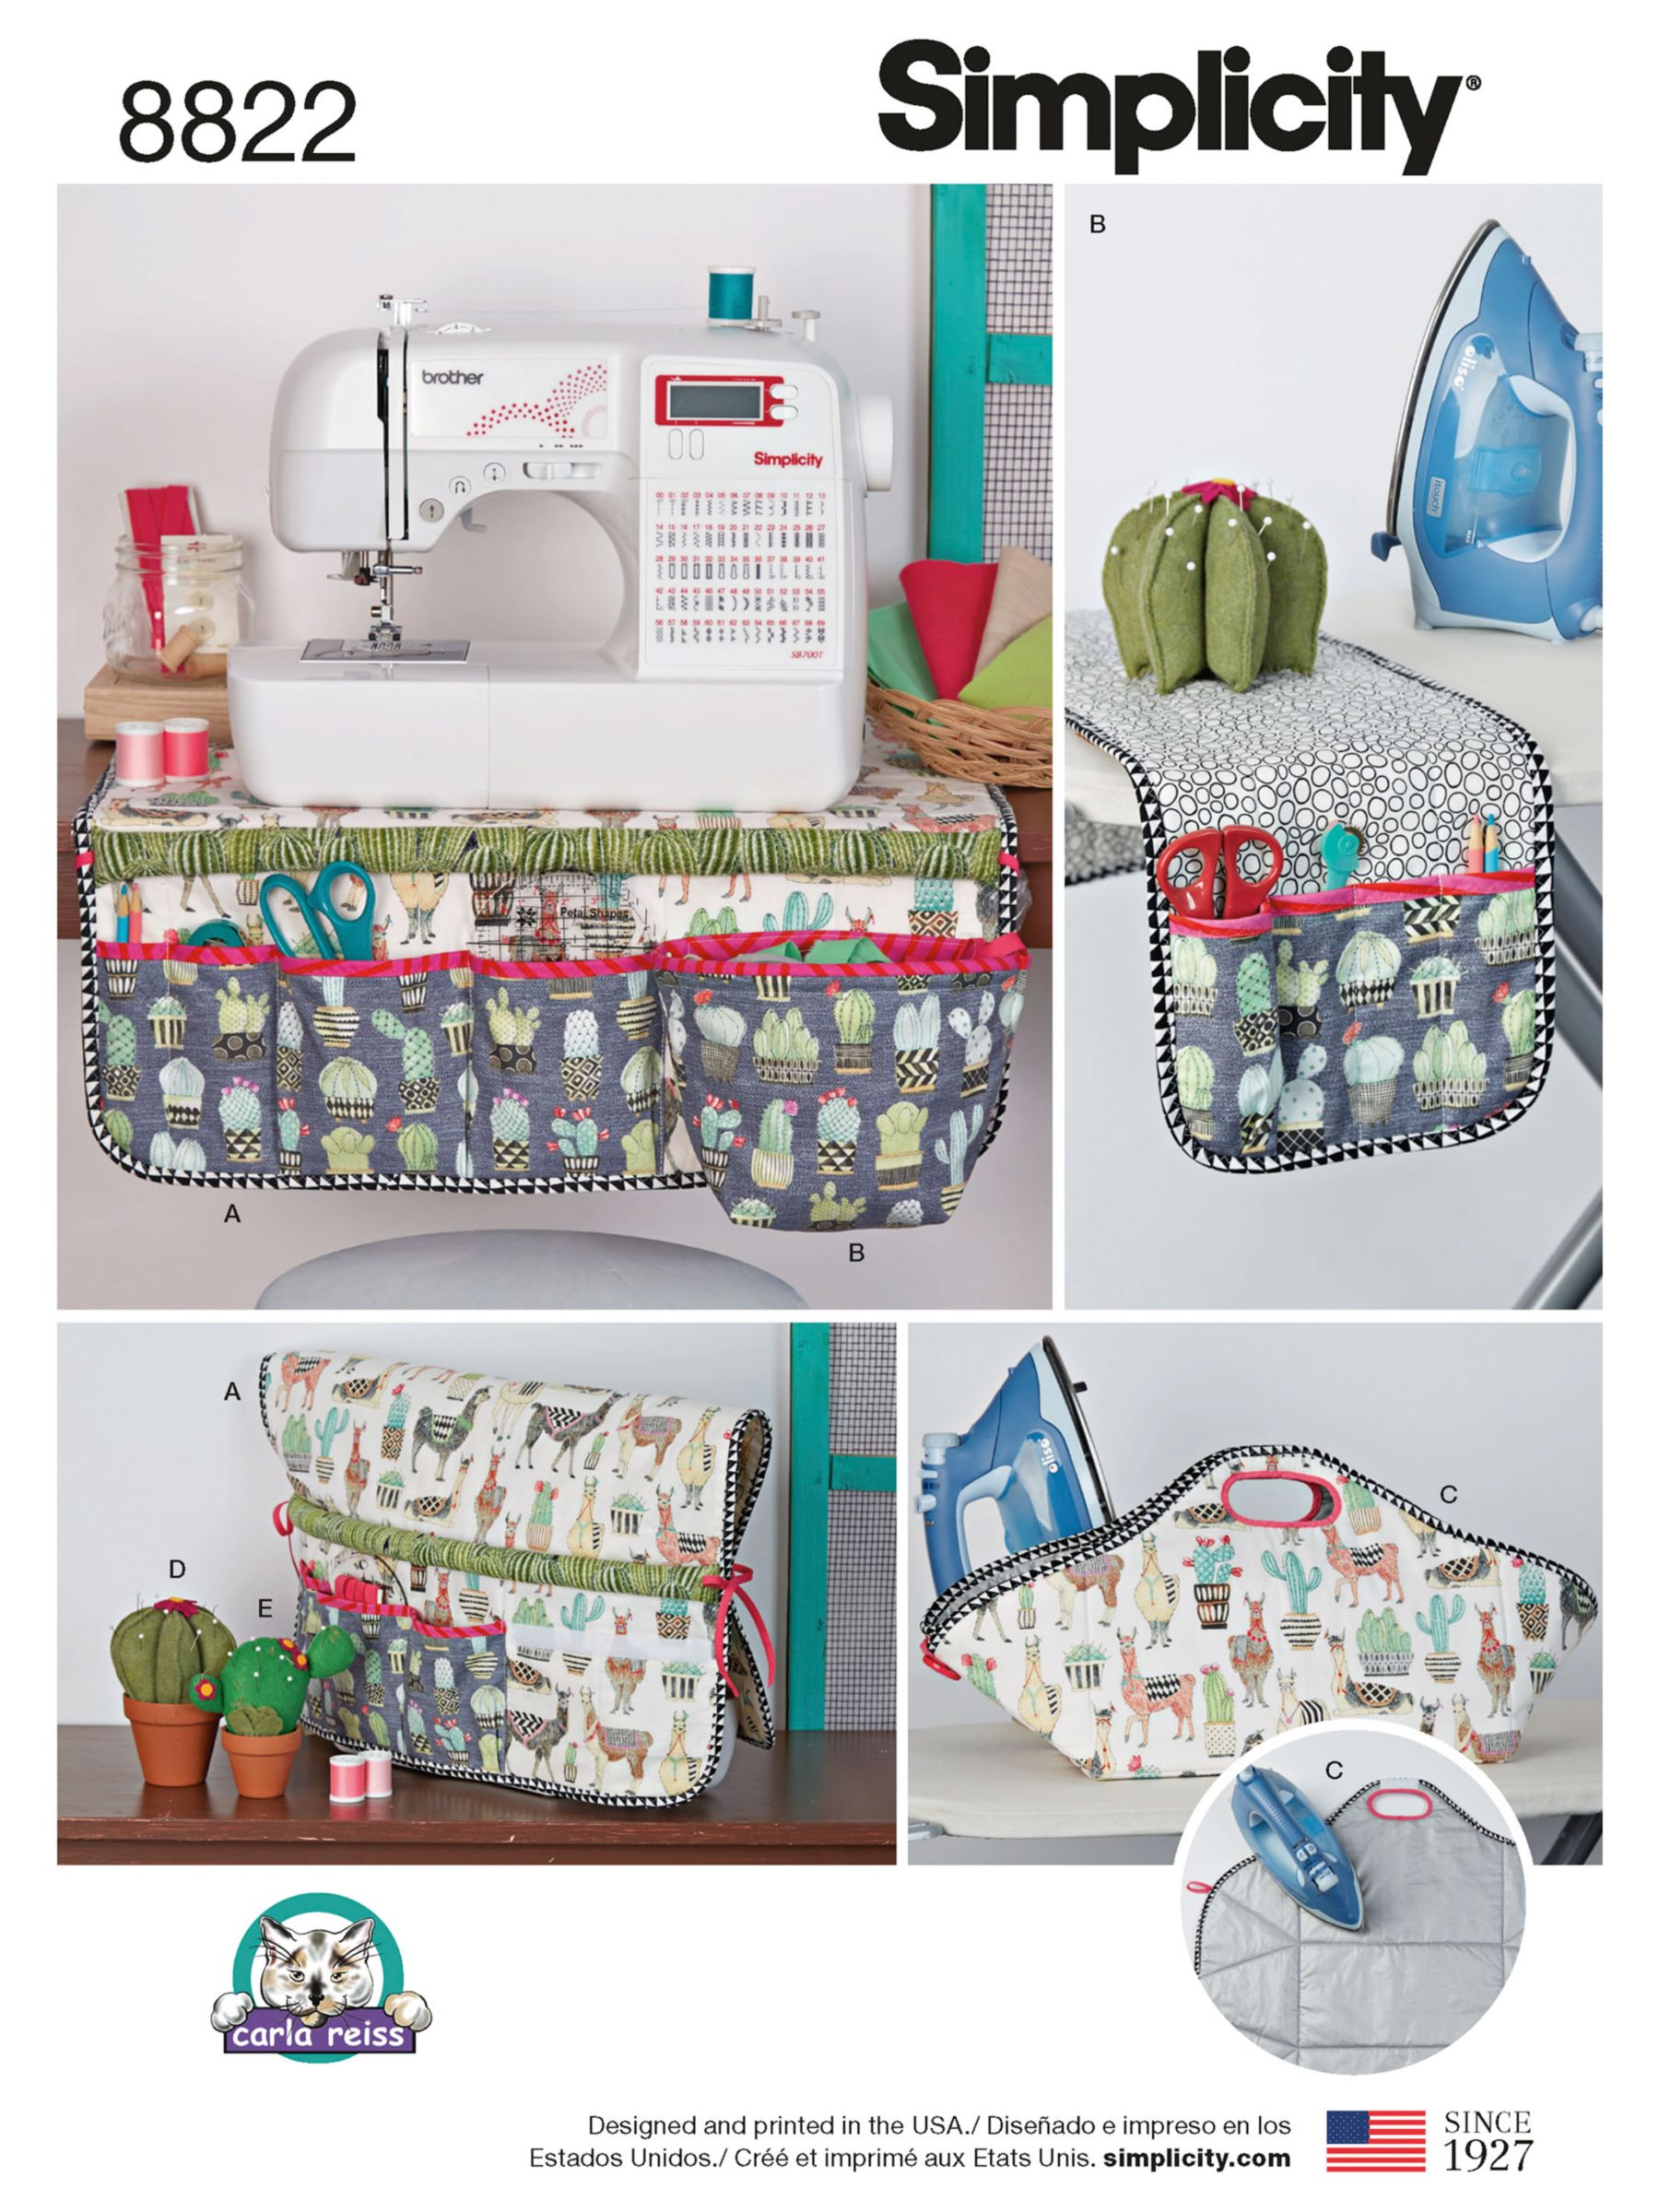 Simplicity Simplicity Sewing Kit Accessories Sewing Pattern, 8822